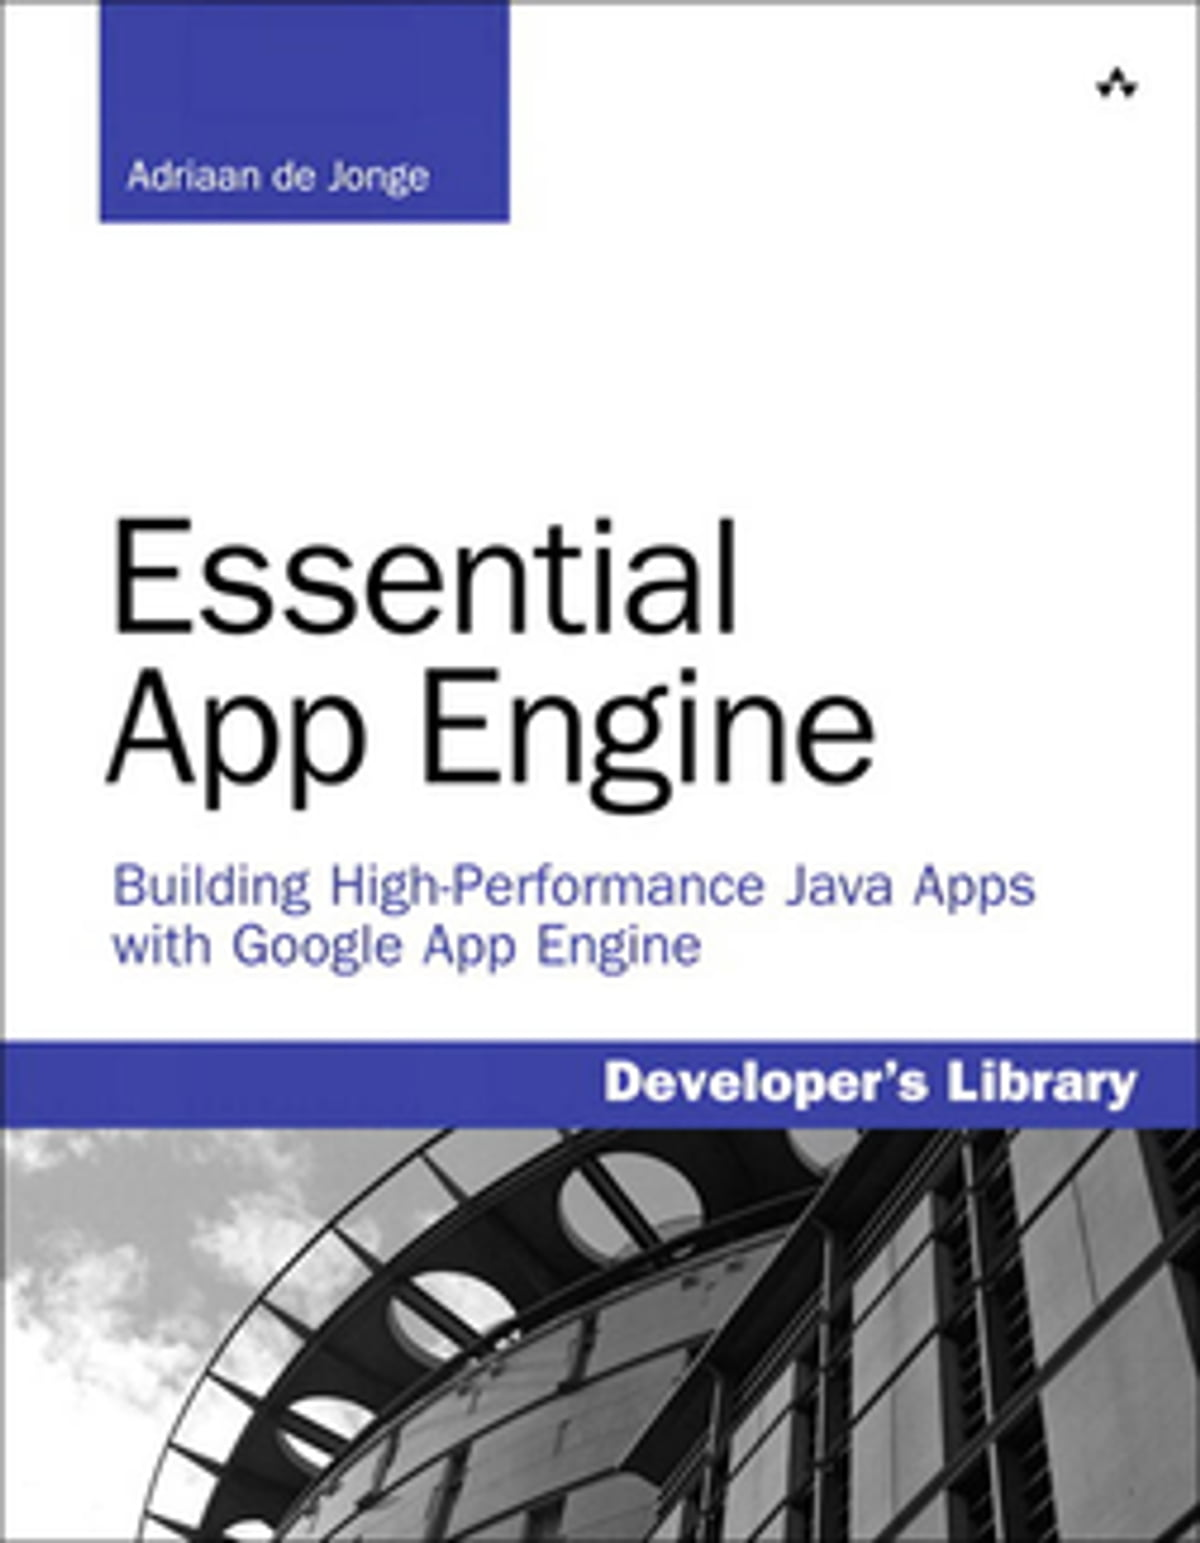 Essential App Engine eBook by Adriaan de Jonge - 9780132484756 | Rakuten  Kobo